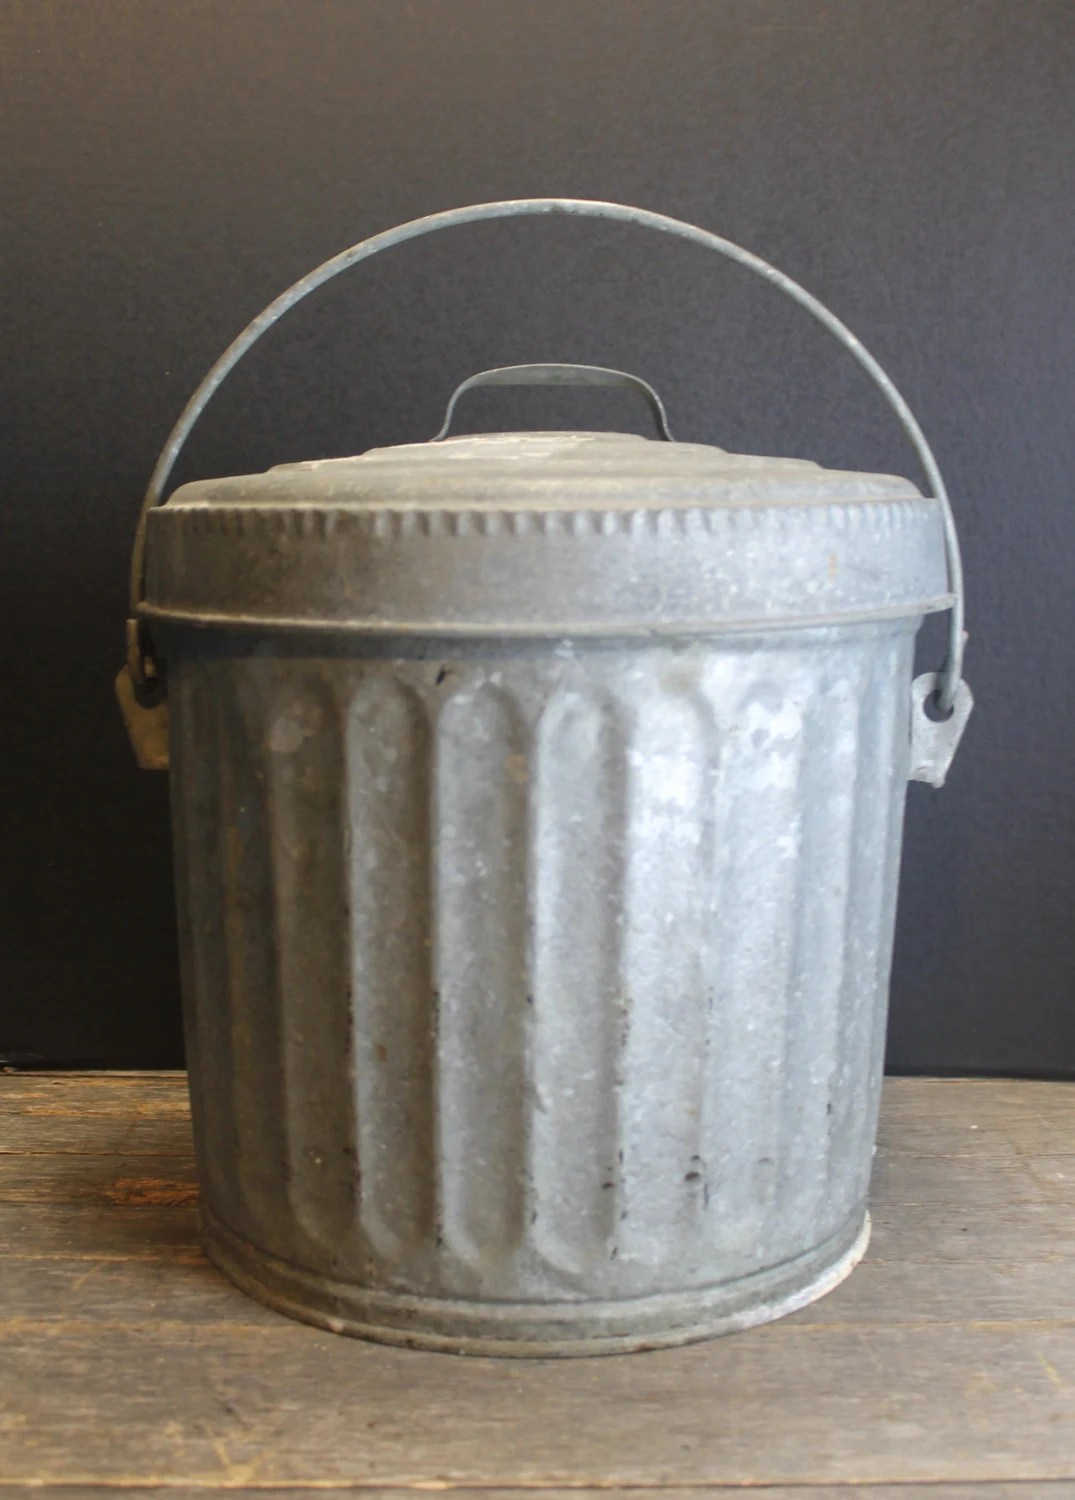 Small Metal Trash Cans With Lids Vintage Galvanized Metal Wheeling Garbage Bin Storage